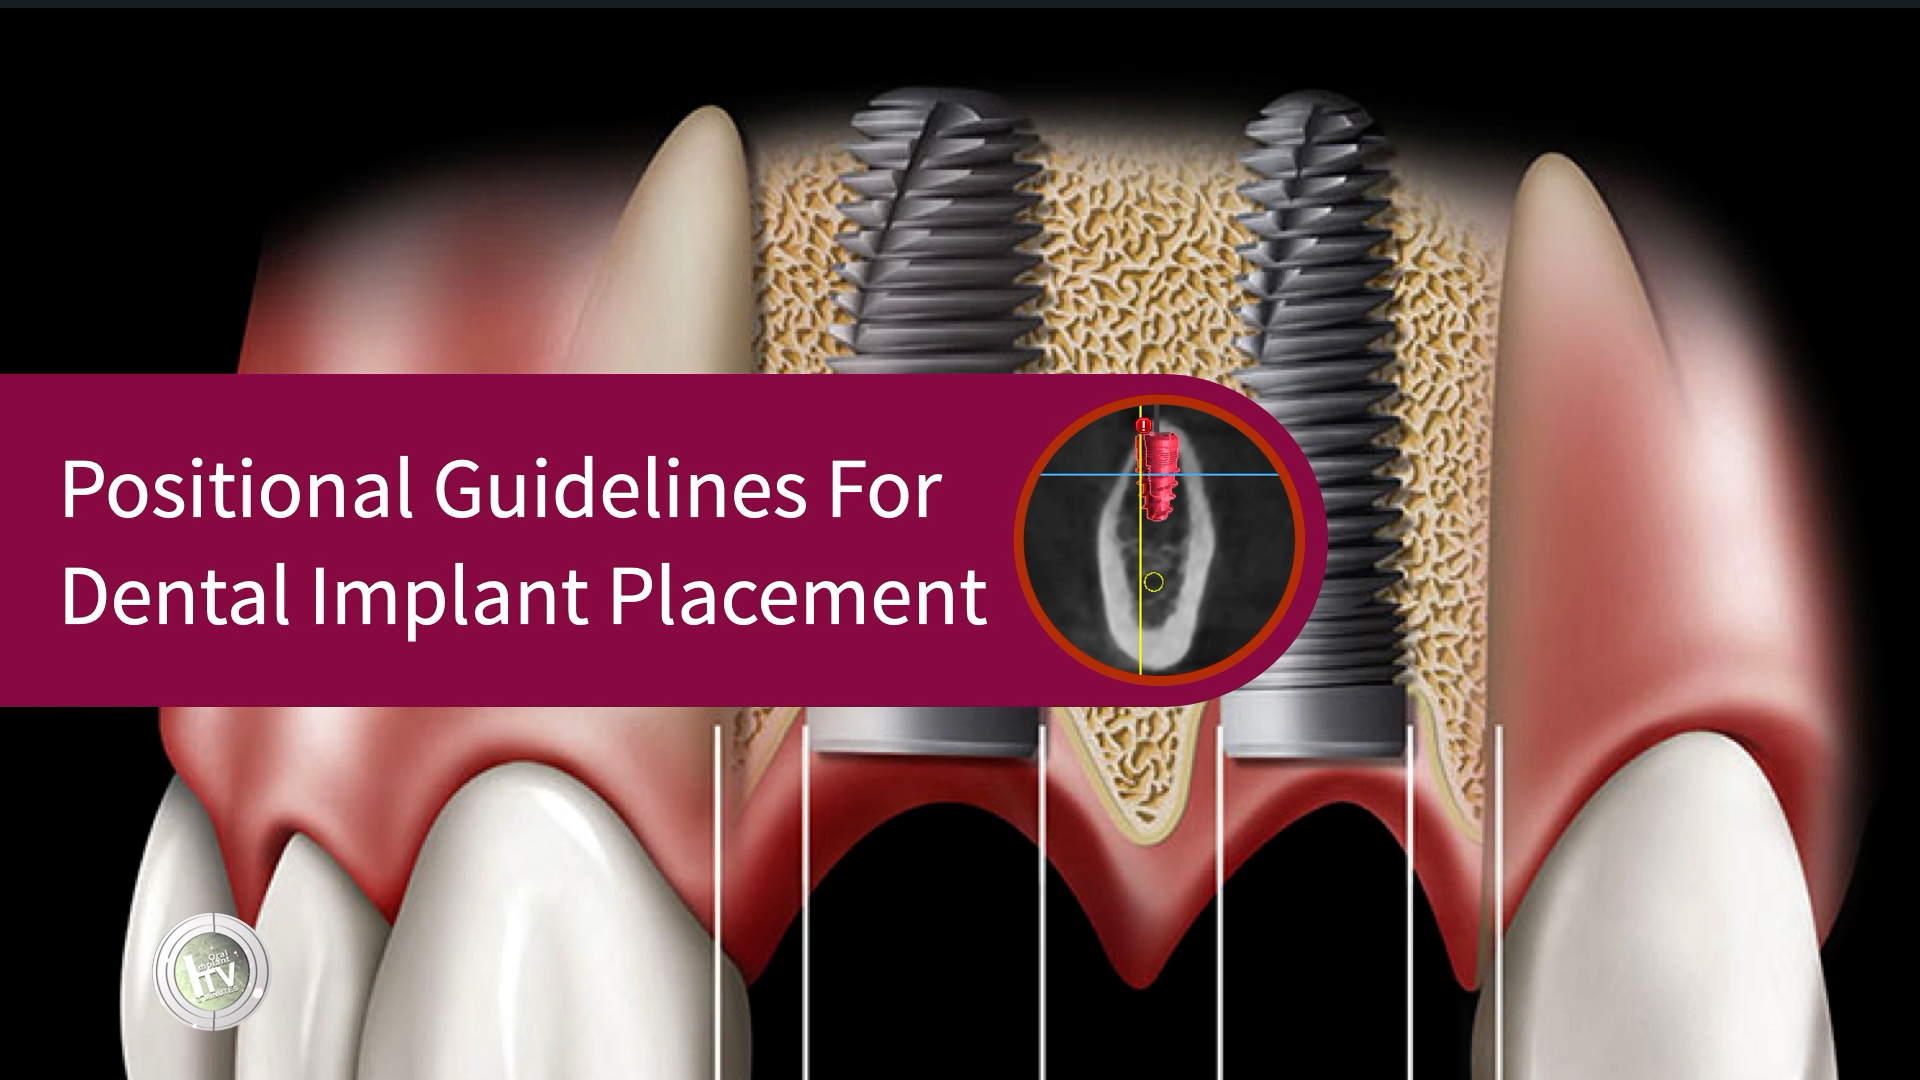 POSITIONAL GUIDELINES FOR DENTAL IMPLANT PLACEMENT